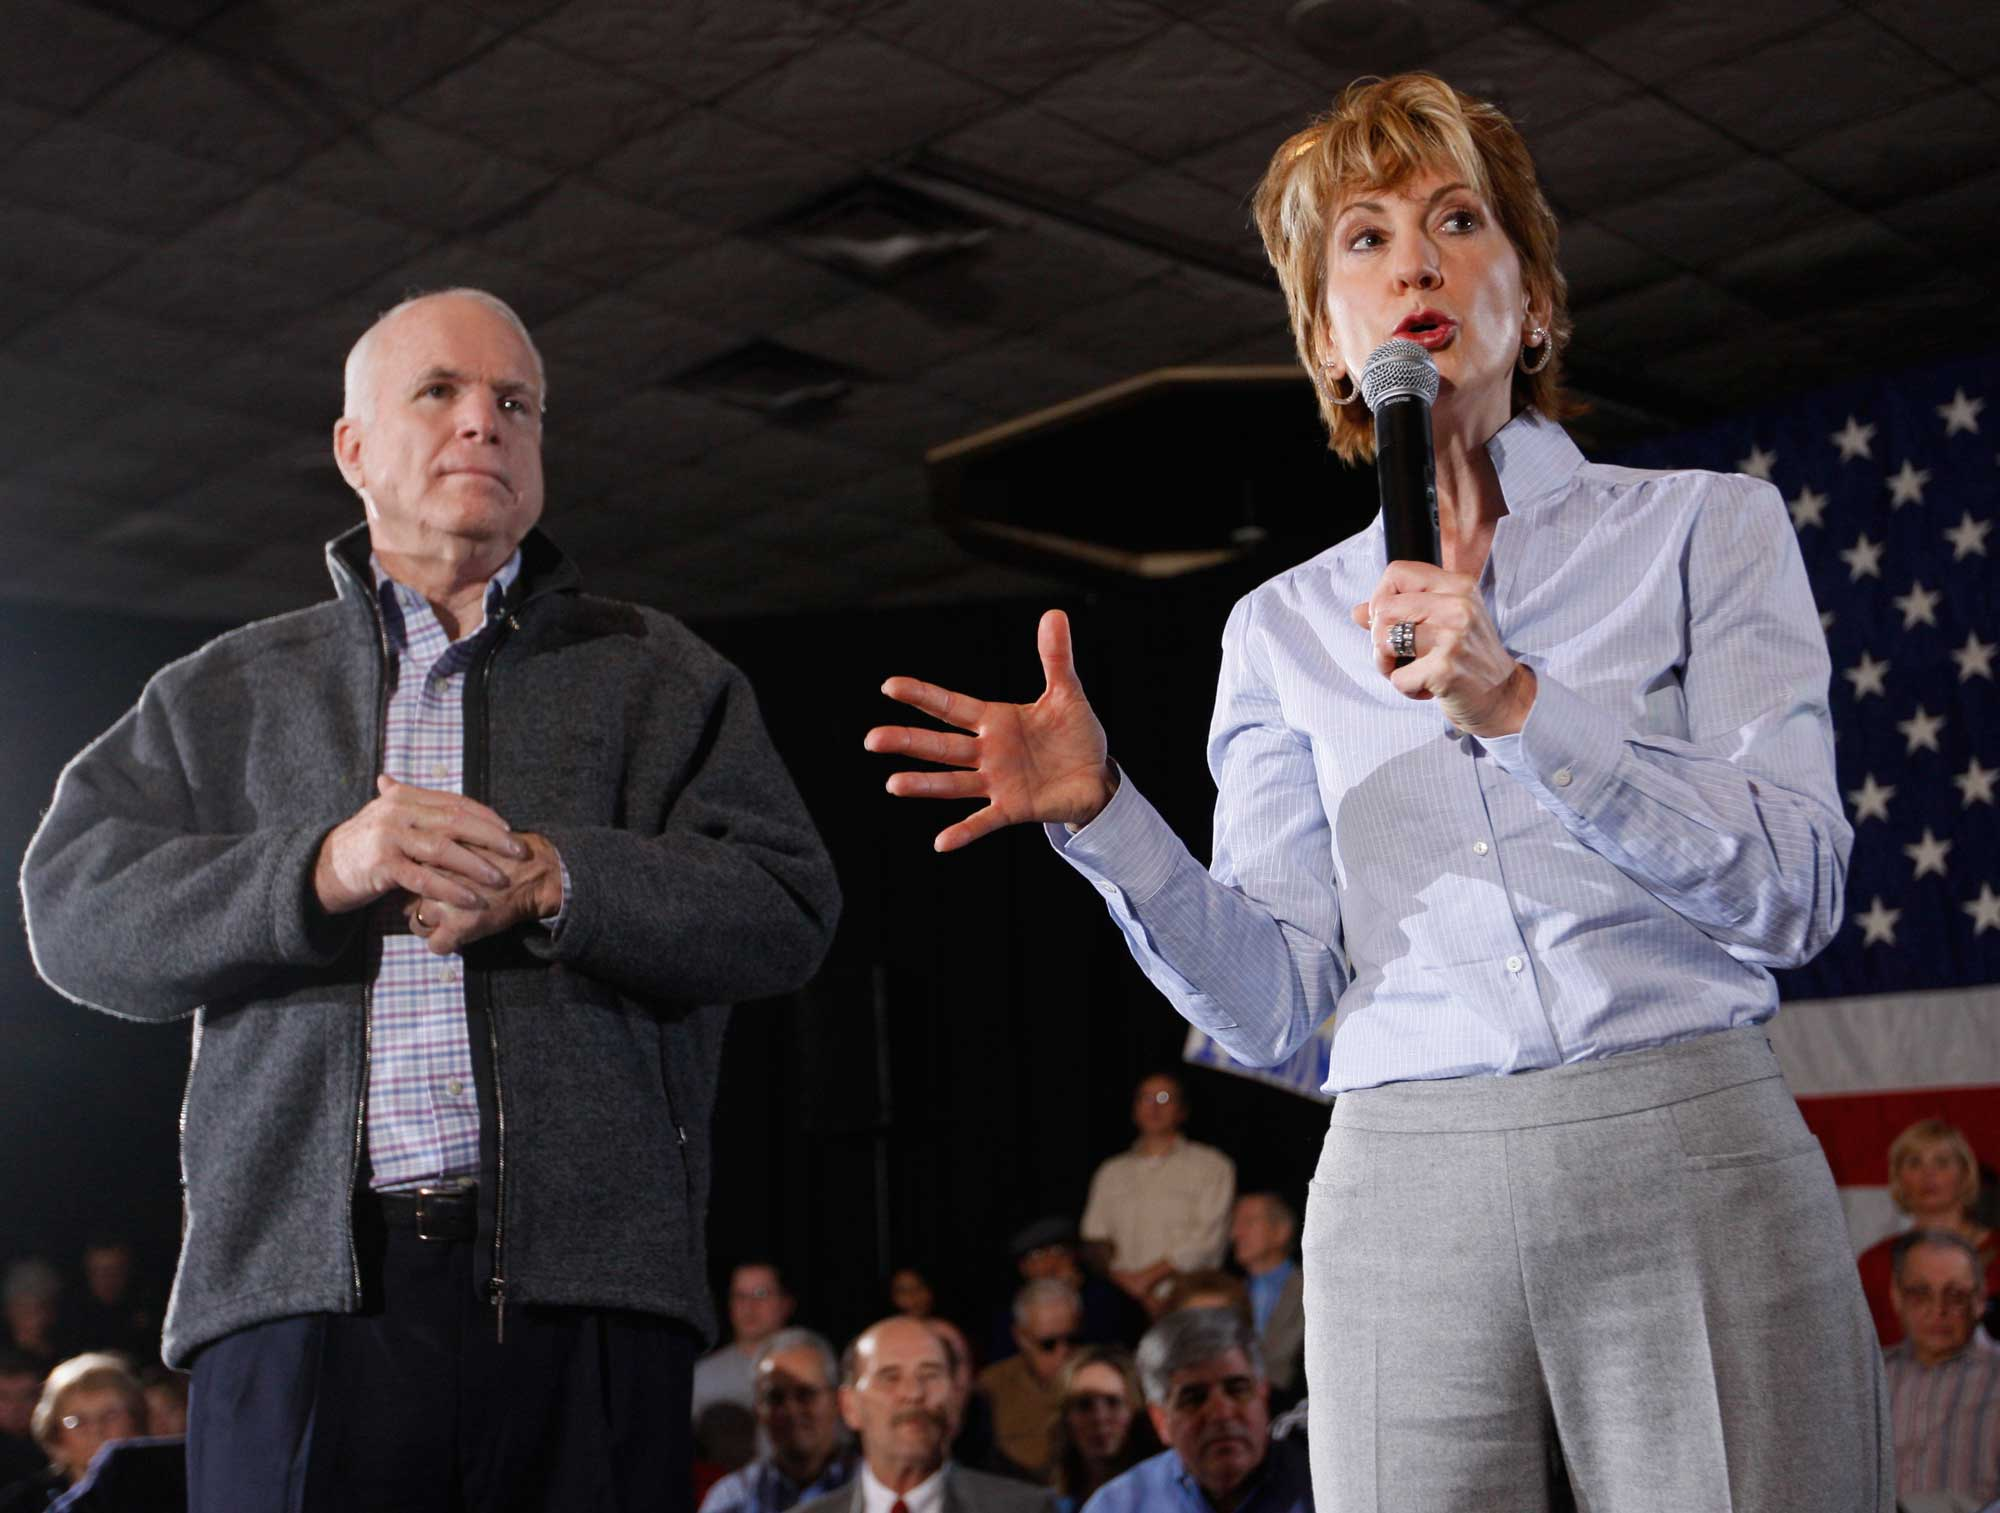 politics features what brought carly fiorina down greatest asset